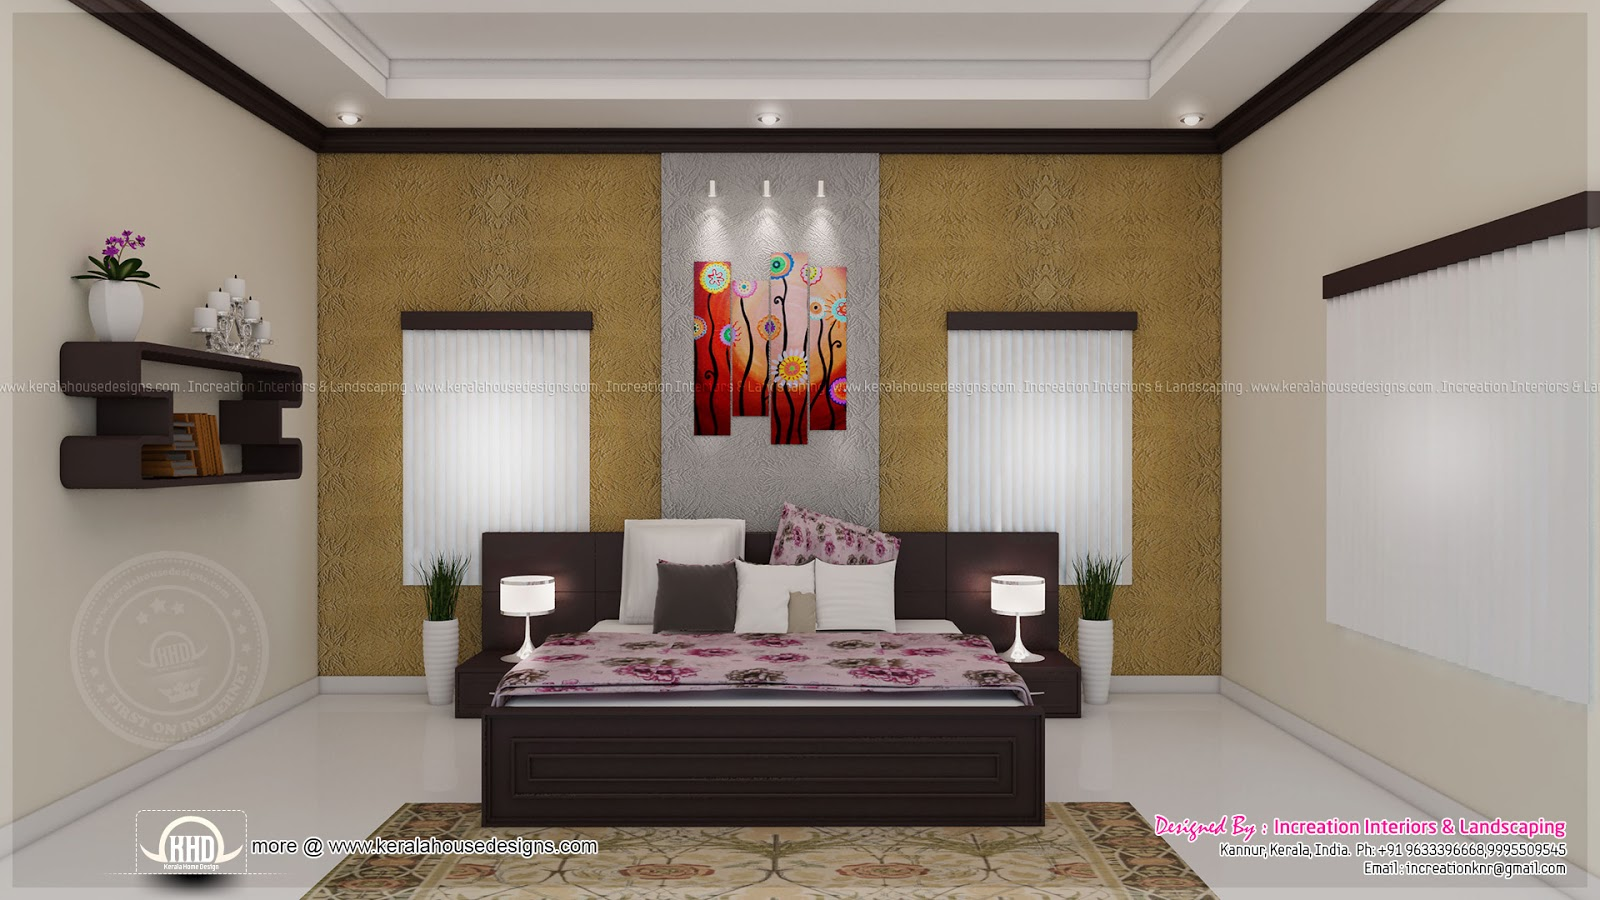 House interior ideas in 3d rendering kerala home design for Home design ideas interior